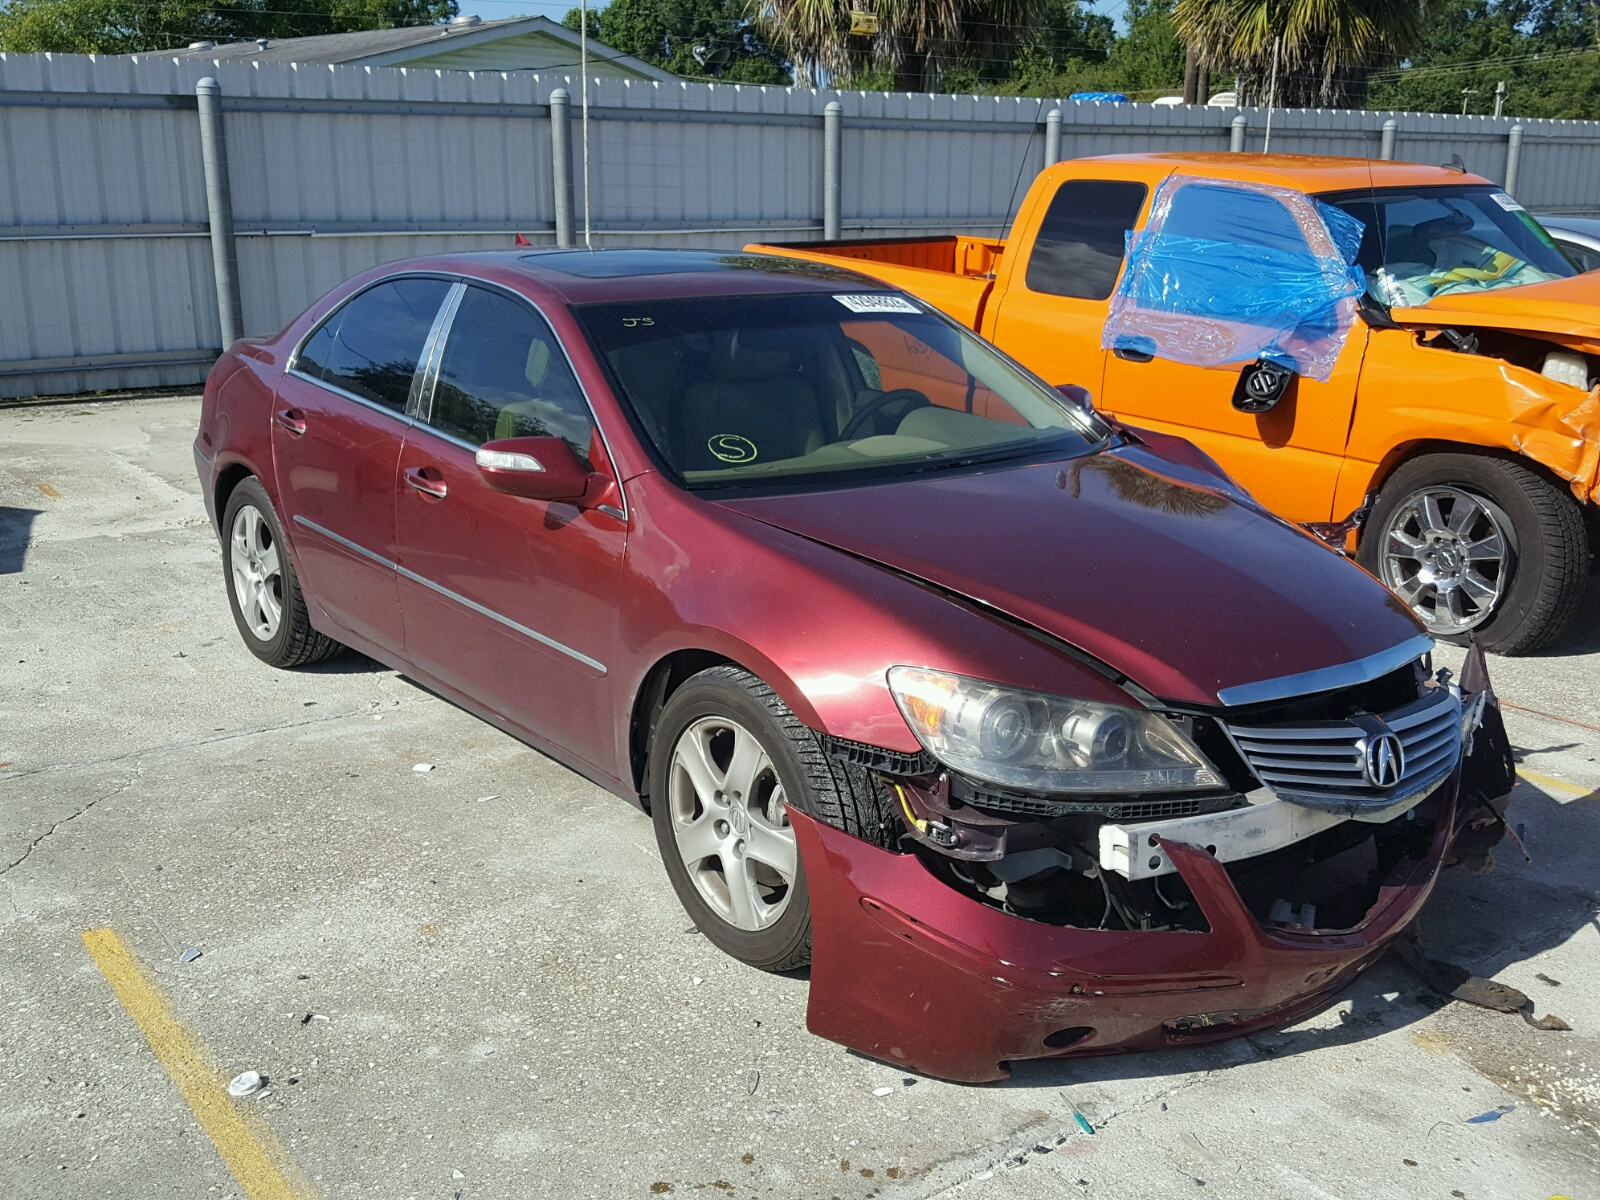 Acura RL For Sale At Copart Punta Gorda FL Lot - 98 acura rl for sale